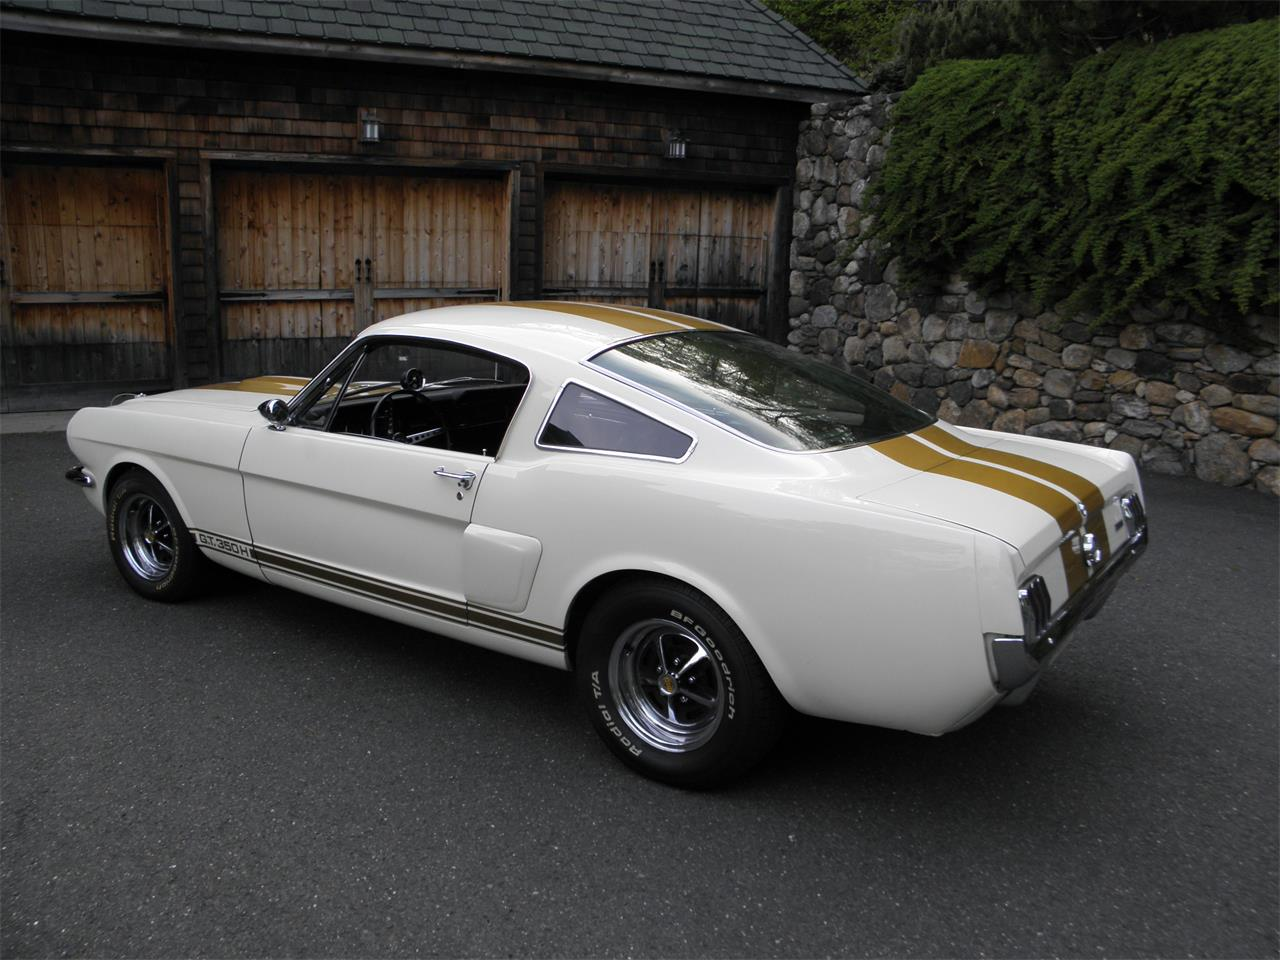 Large Picture of Classic 1966 Shelby Mustang located in Connecticut Auction Vehicle Offered by a Private Seller - I9VF